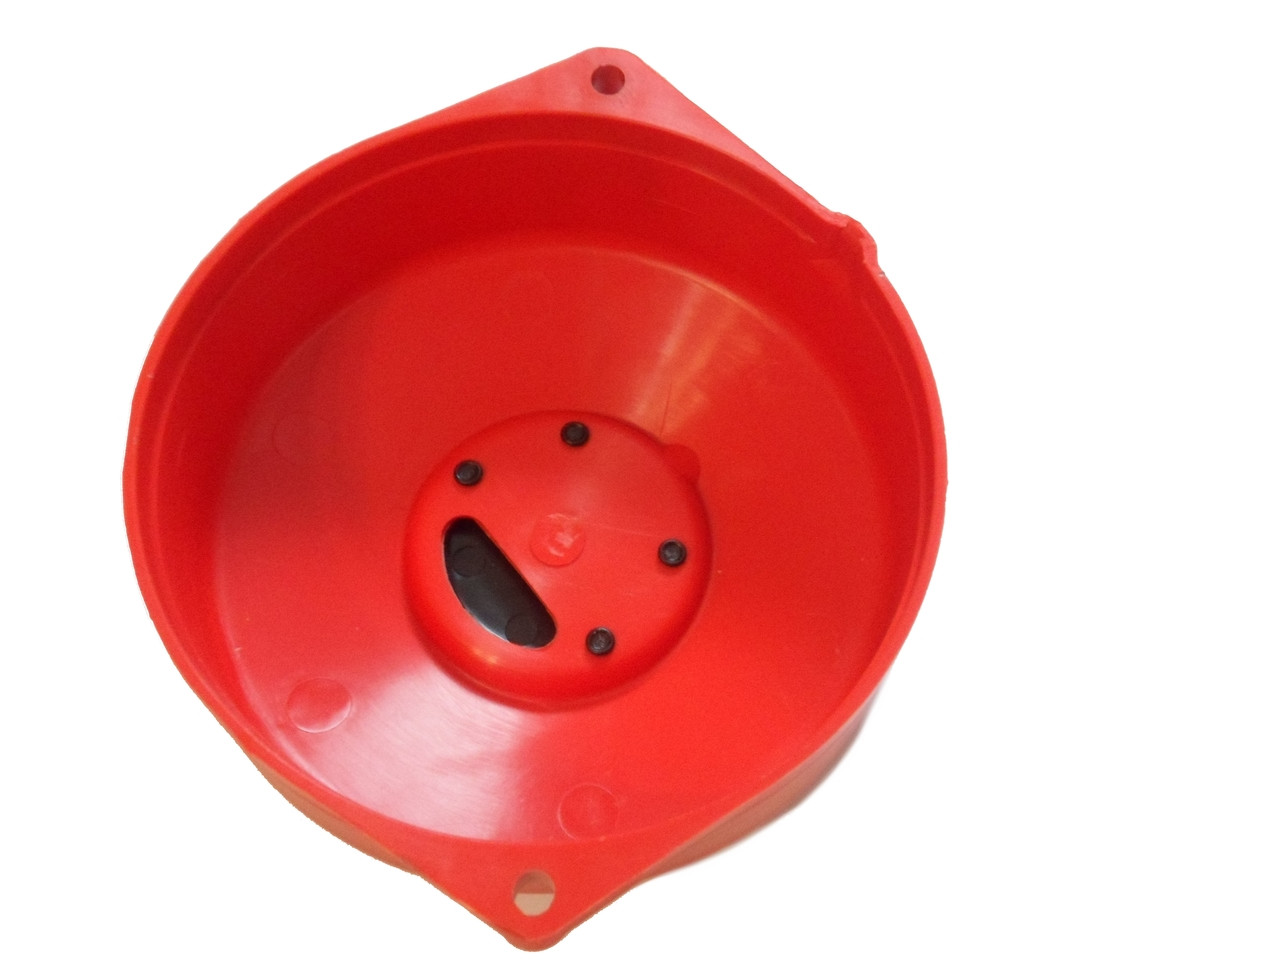 NOS Puch Moped Flywheel Cover - Red w/ Black Emblem